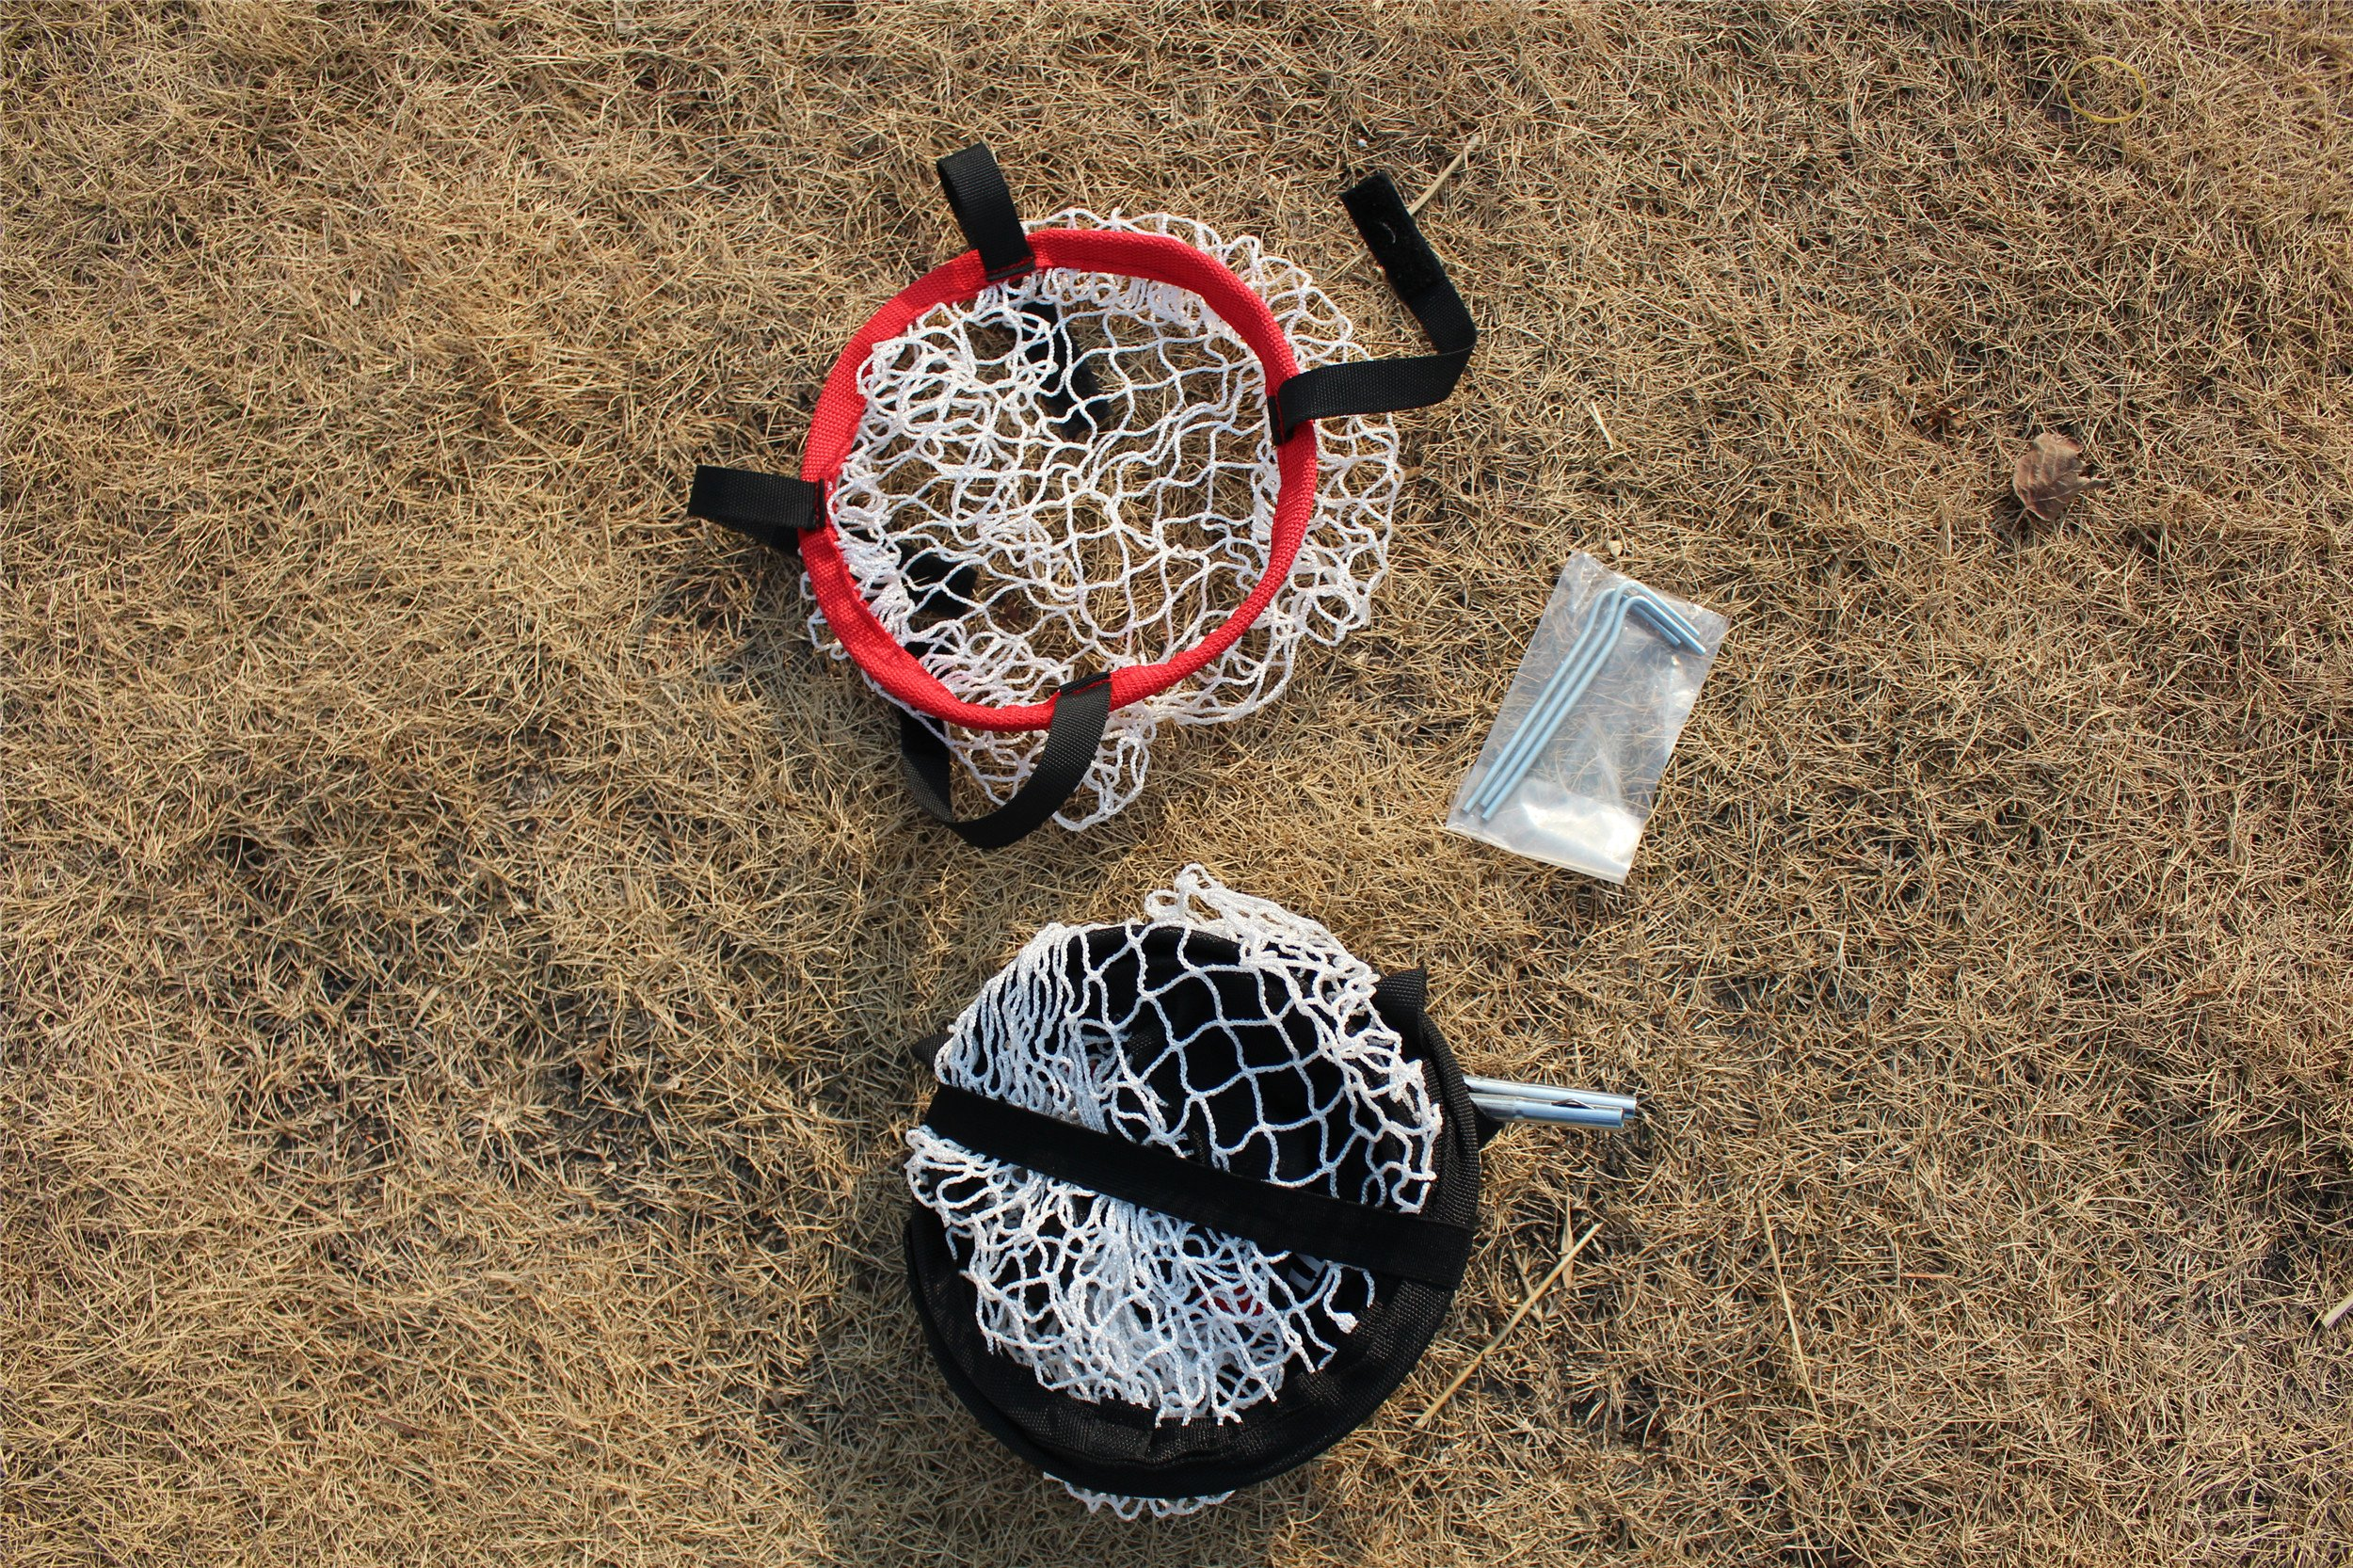 Golf net with Target net Diameter 50cm ' Pop Up Golf Chipping Net   Outdoor & Indoor Golfing Target Accessories and Backyard Practice Swing Game by Galileo (Image #3)